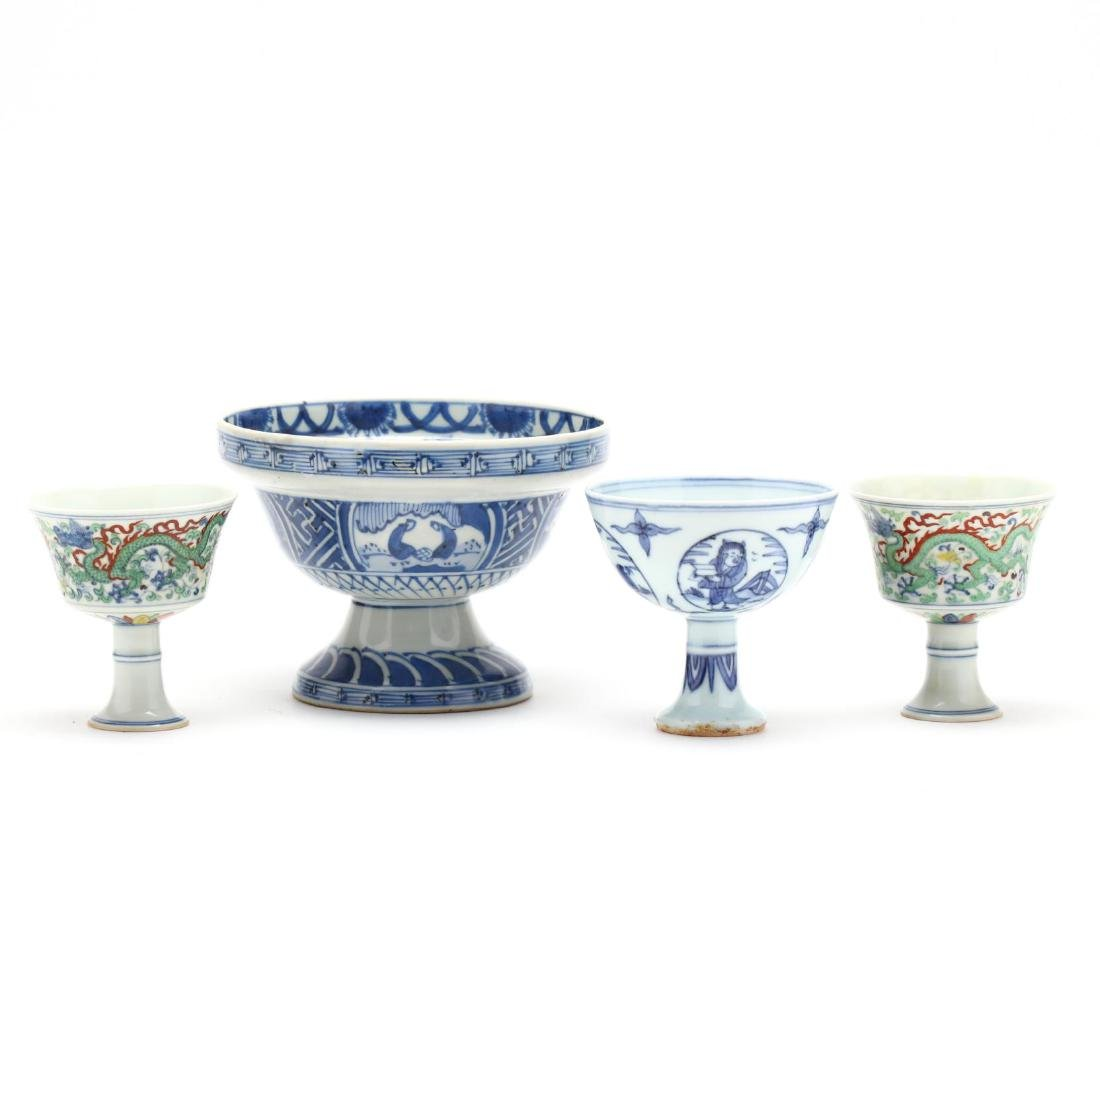 Three Chinese Stem Cups and A Footed Bowl